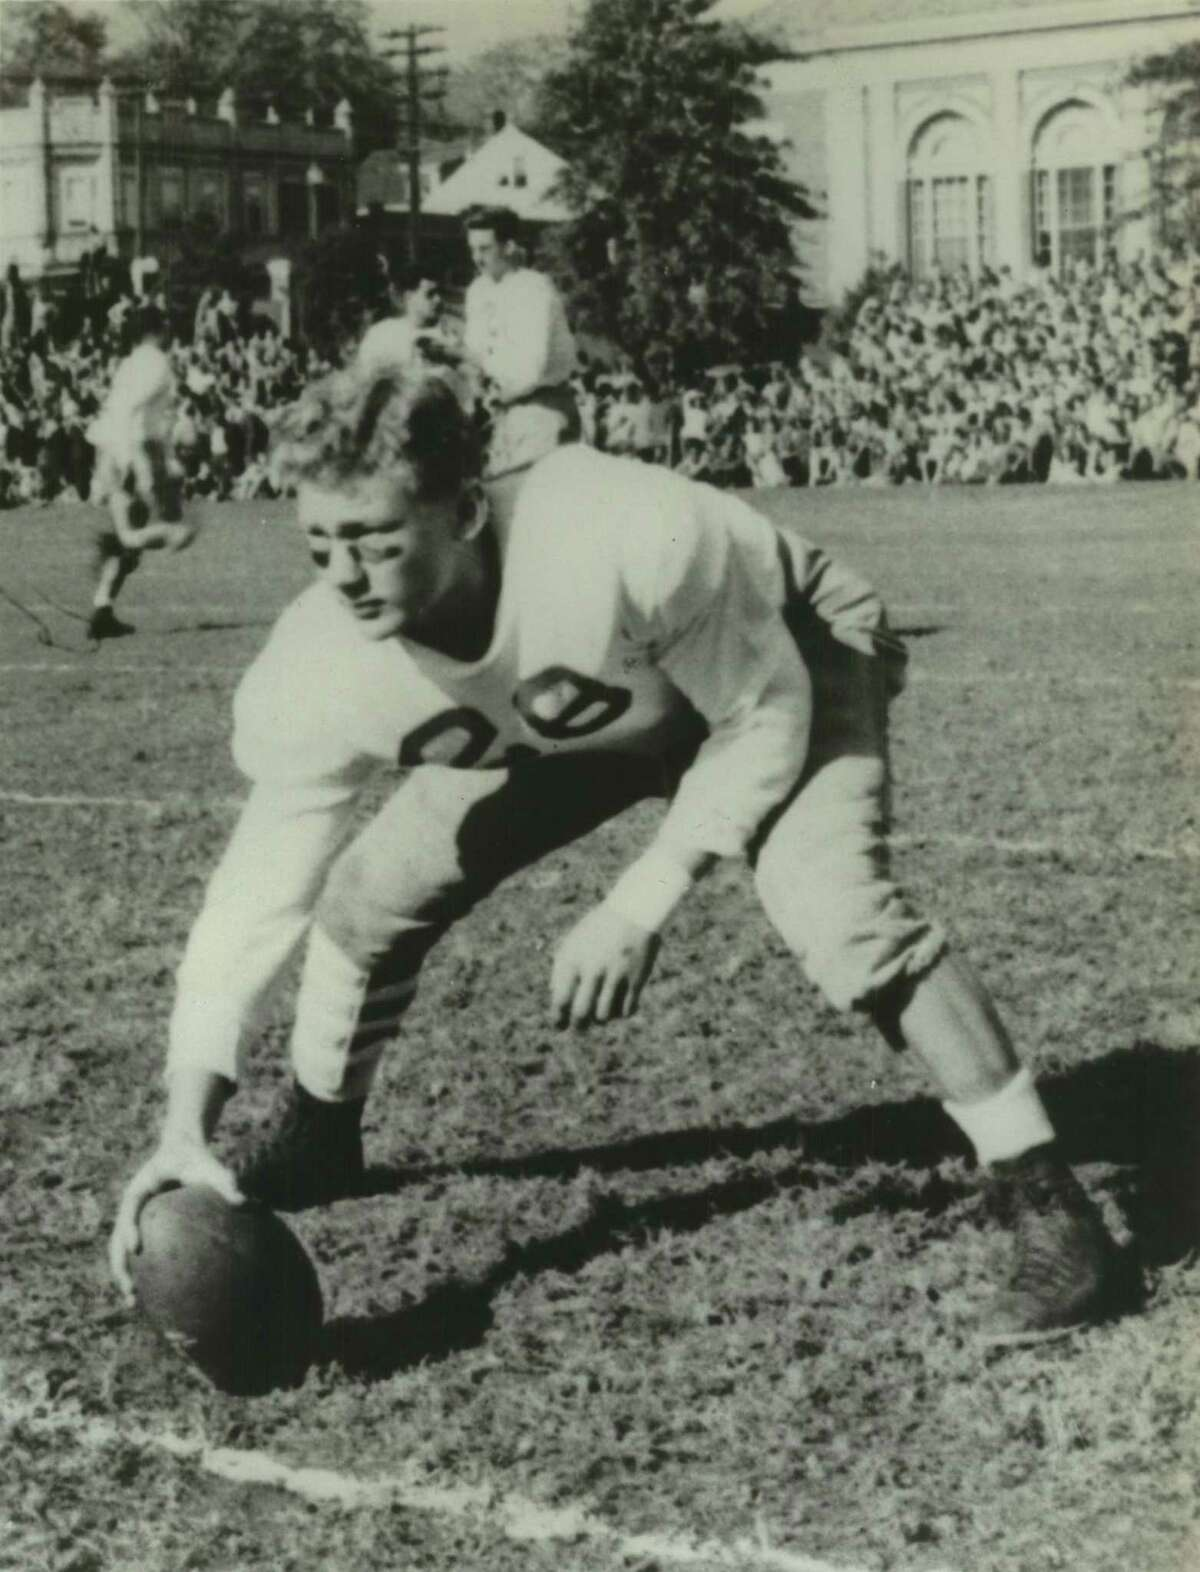 """As a 160-pound center for Montclair High School in Montclair, New Jersey, Buzz Aldrin had a unique talent. """"I was the only guy who centered for a punt with one hand,"""" he says. He attended Montclair High from 1943-1947 and worked as a dishwasher after school."""